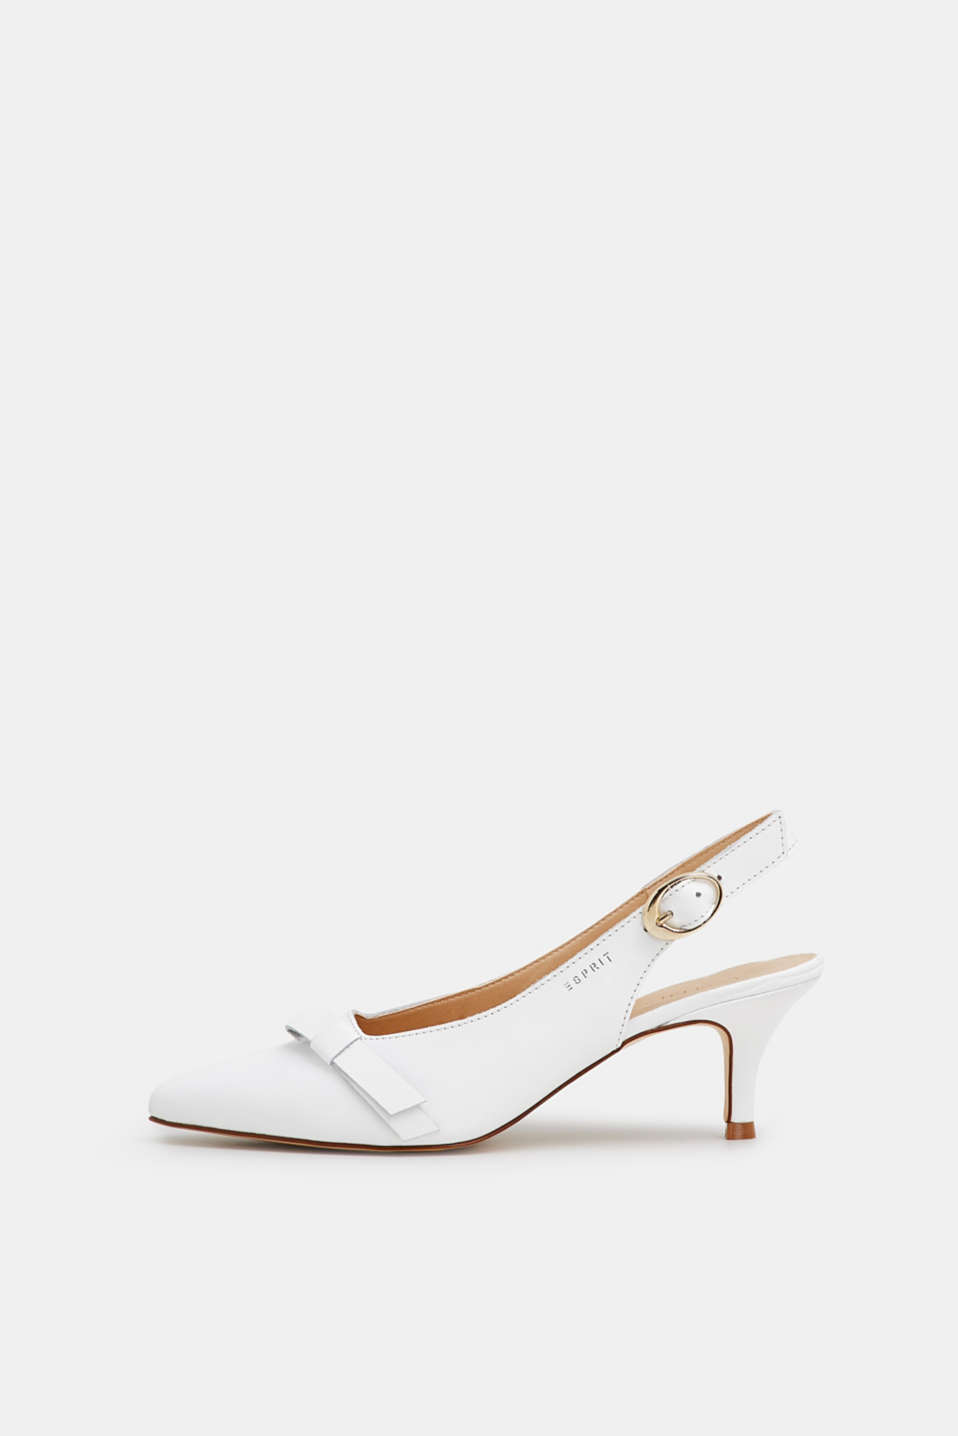 Esprit - Slingback-Pumps in Leder-Optik